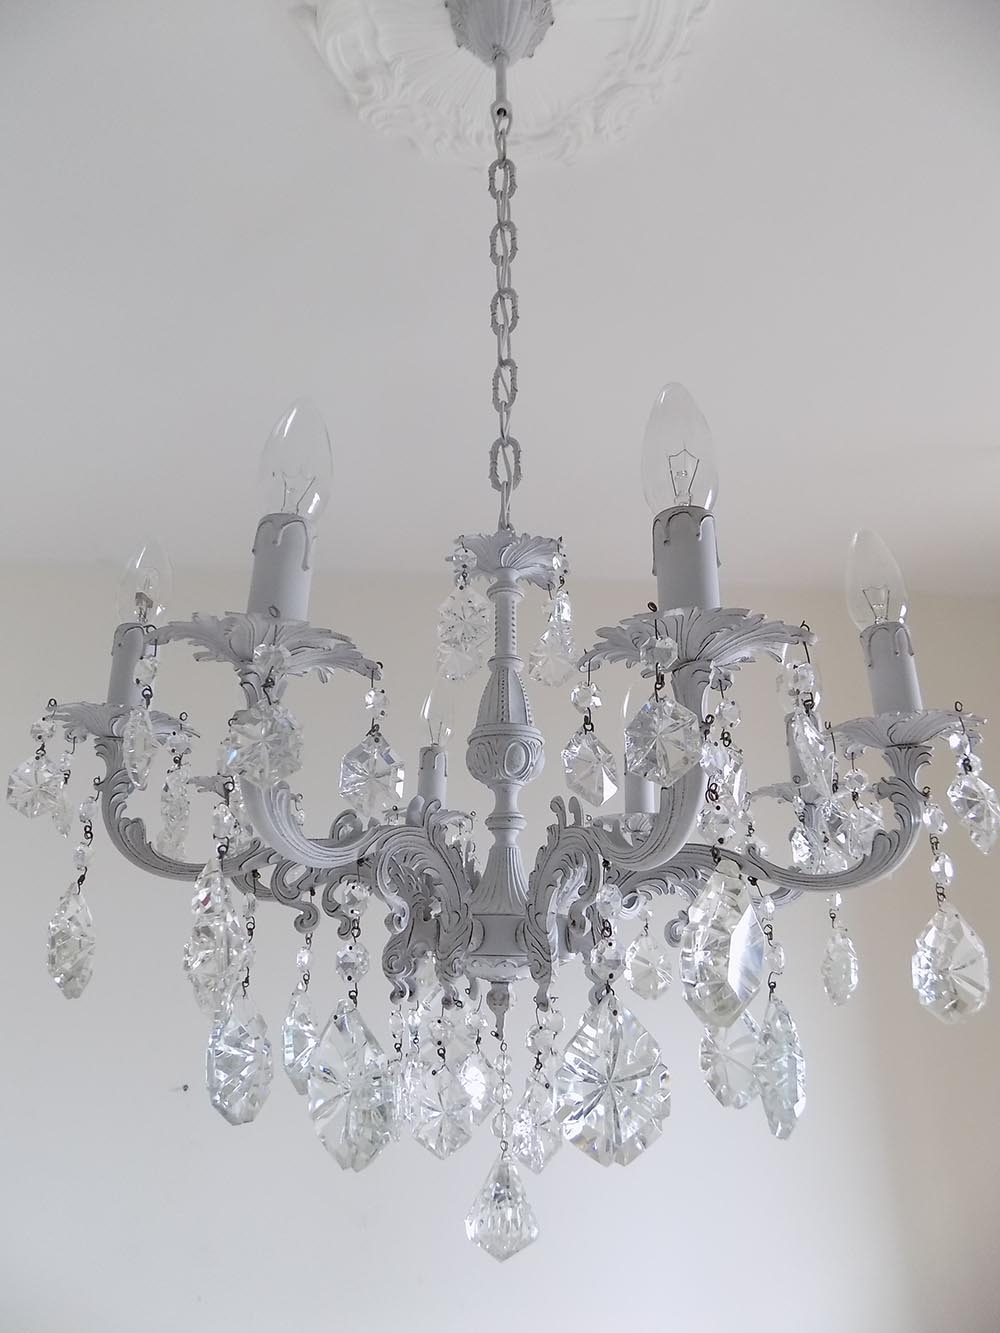 Popular Photo of Grey Crystal Chandelier